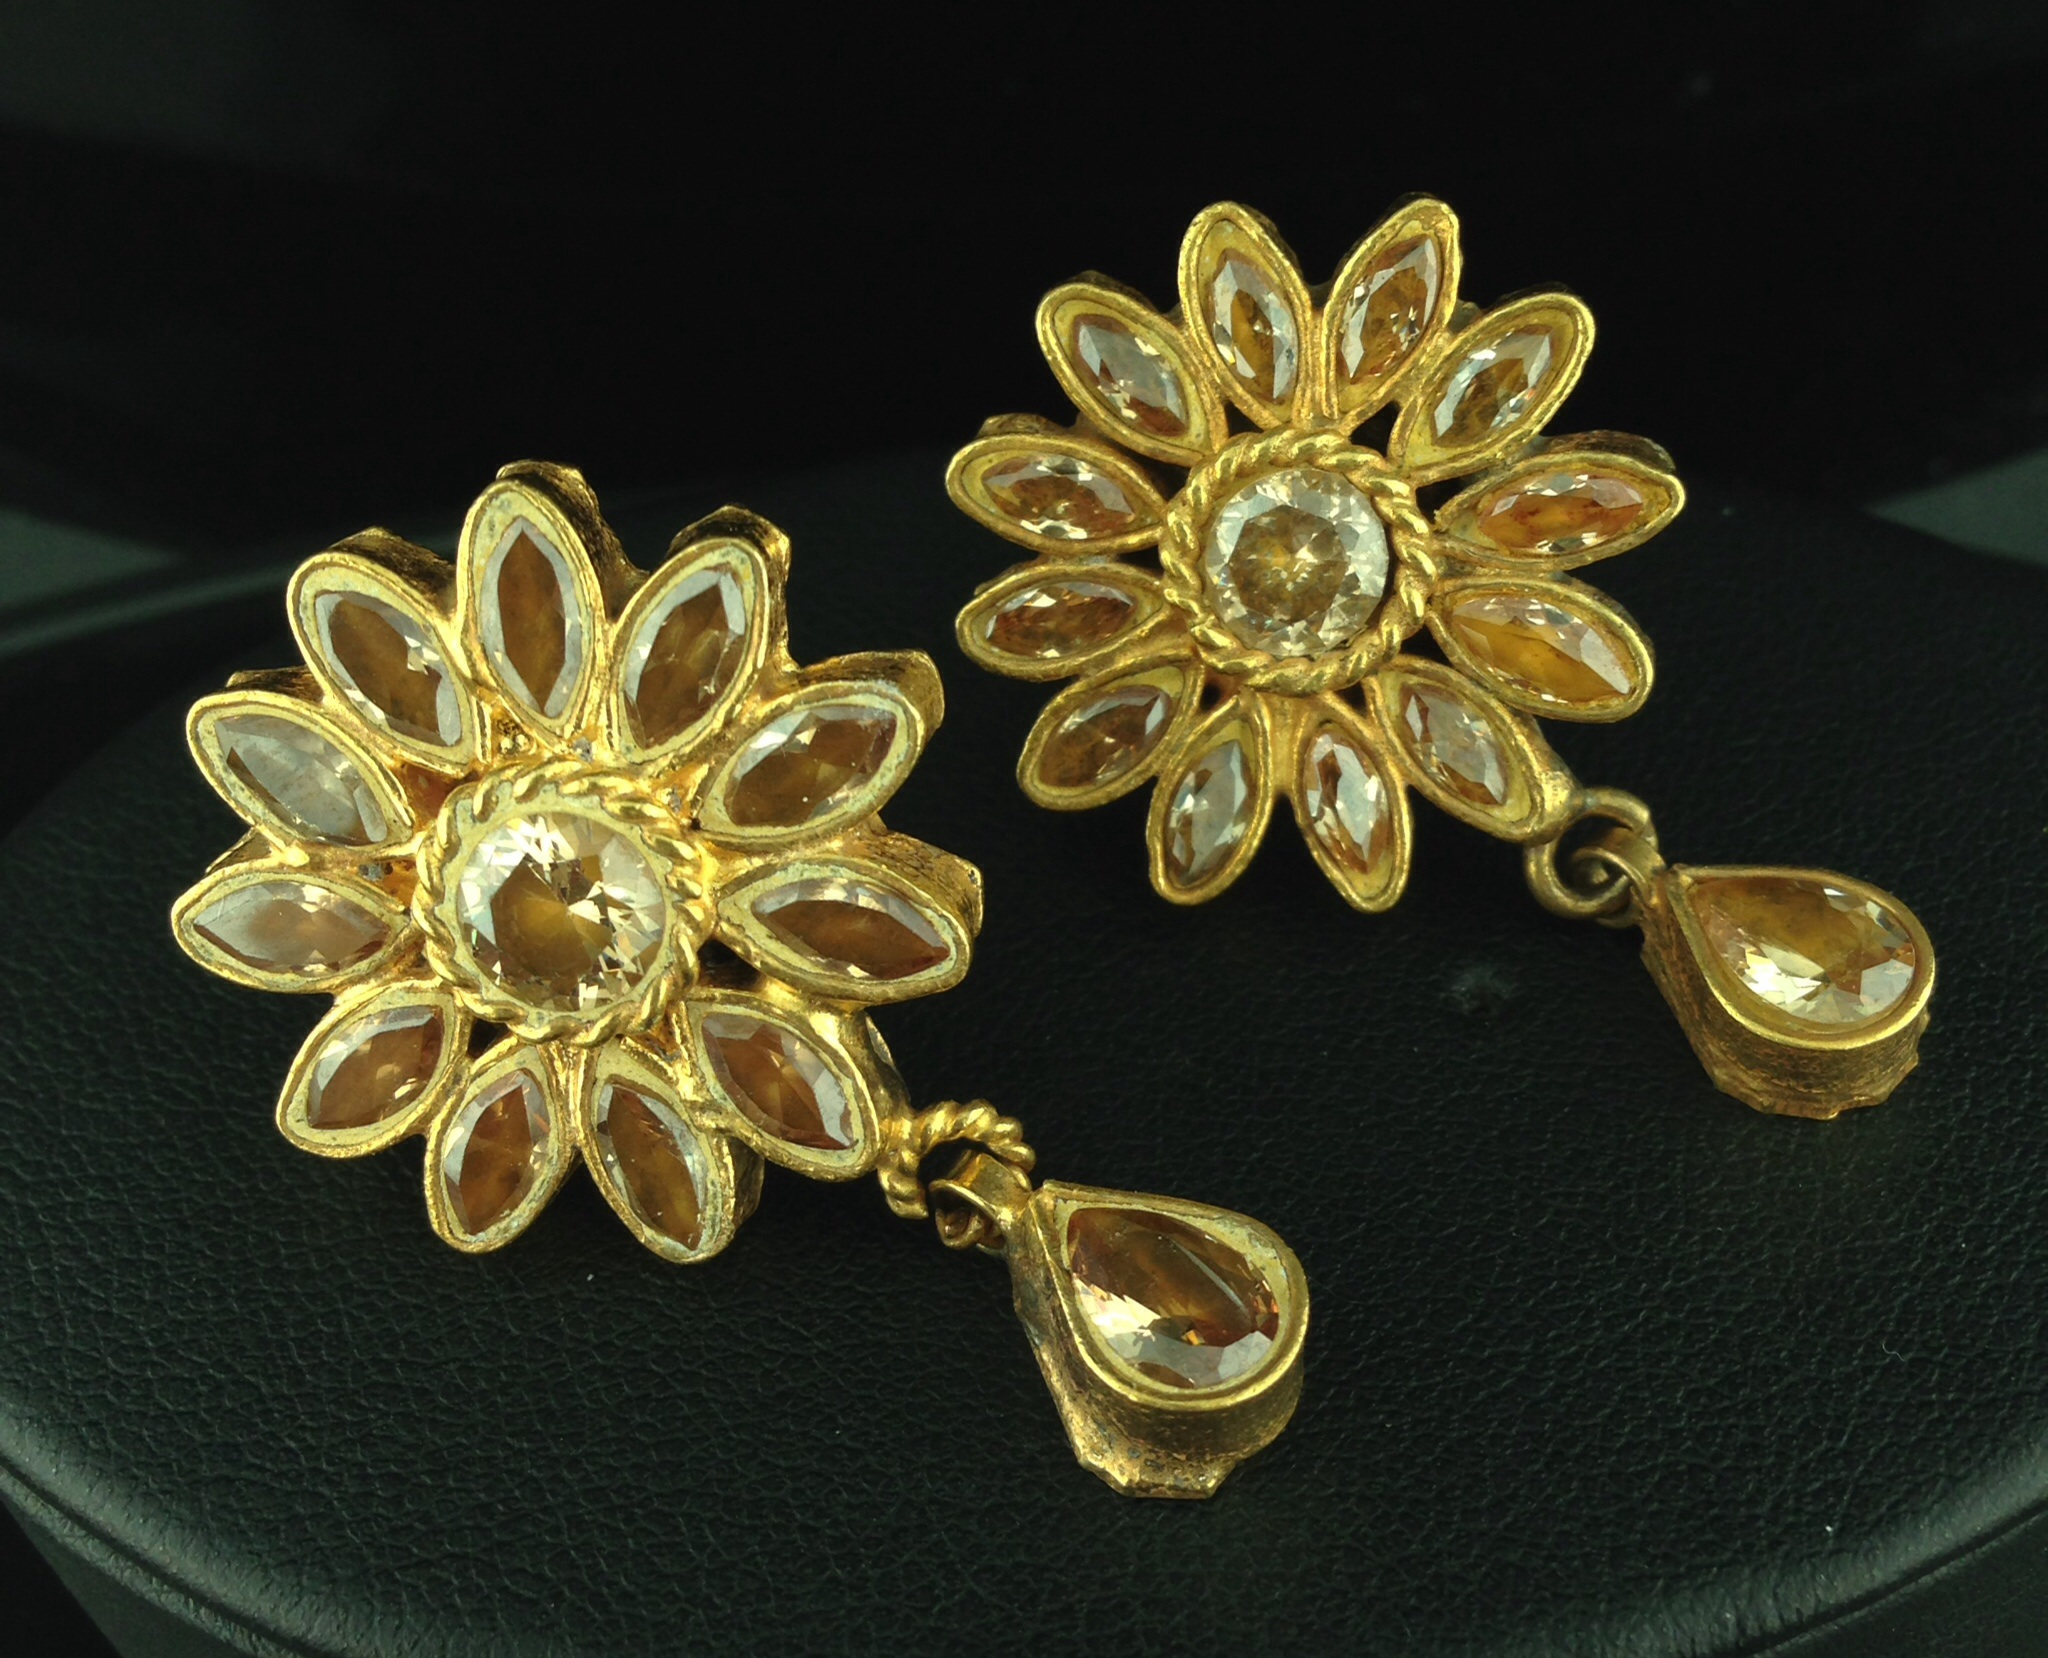 Flower Shaped Kundan Tops with Champagne Stones.